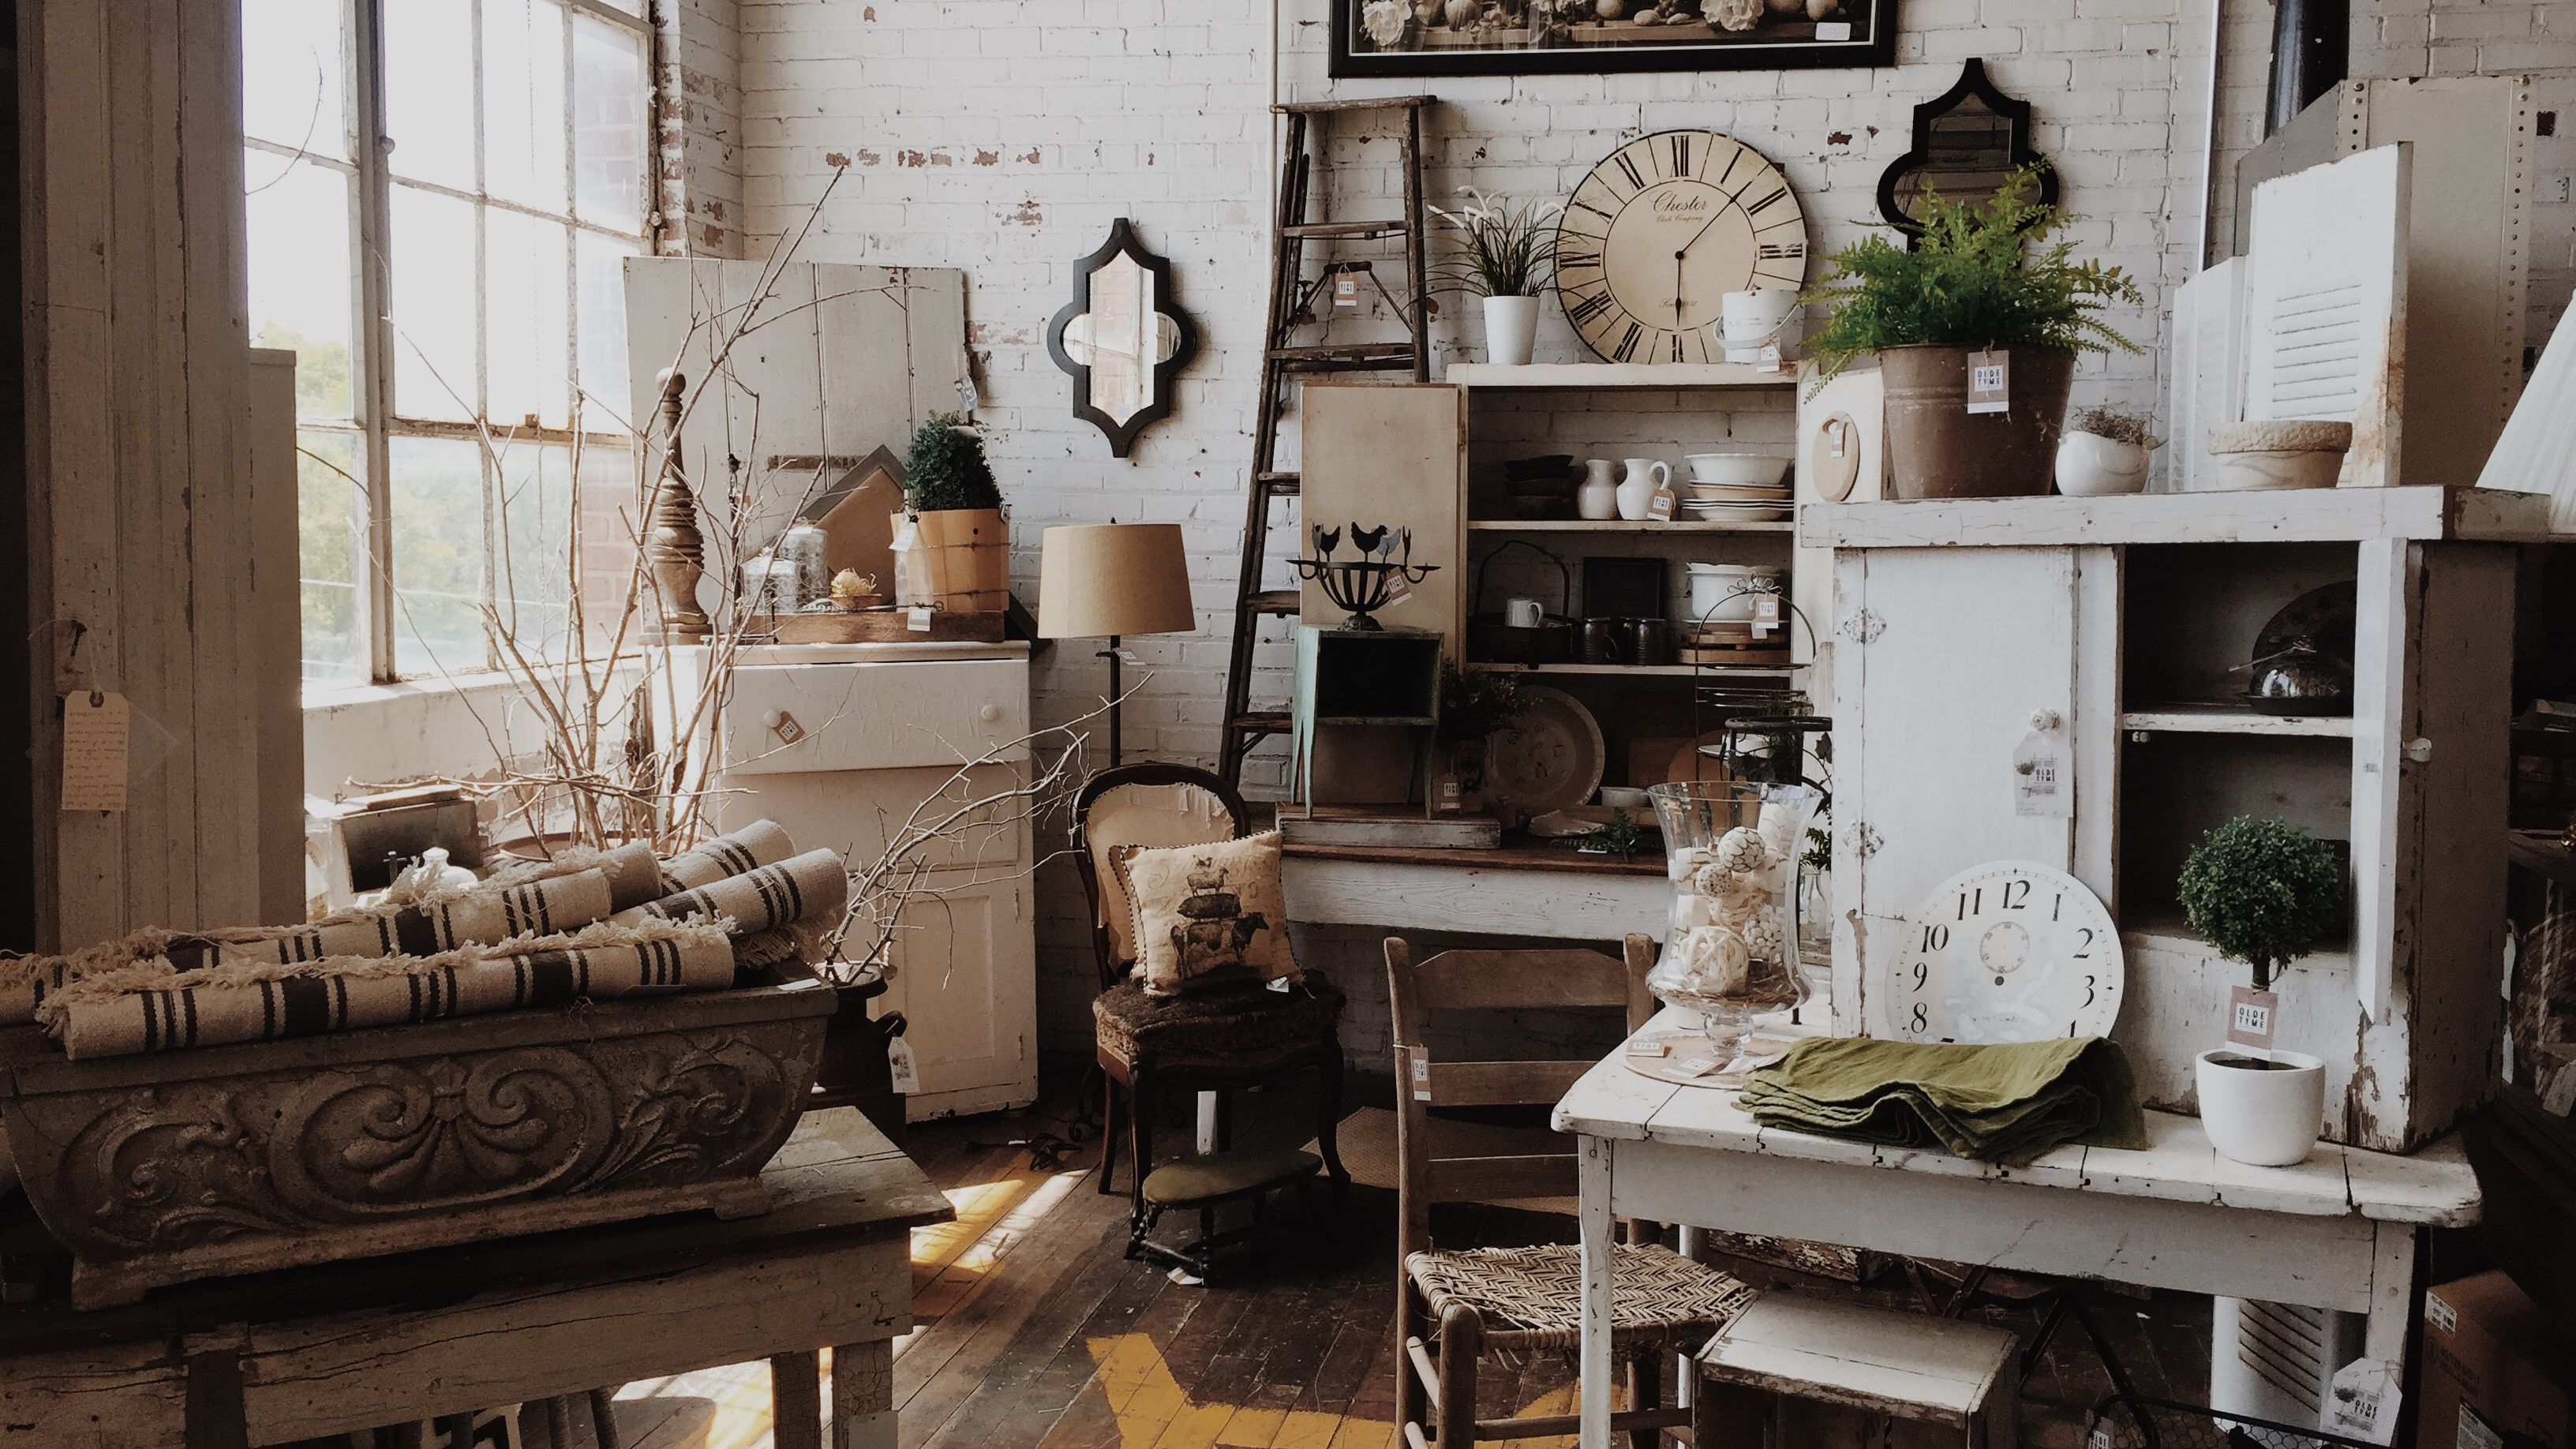 yard sale style 7 things to shop for to decorate on the.htm 10 truths about vintage decorating  10 truths about vintage decorating